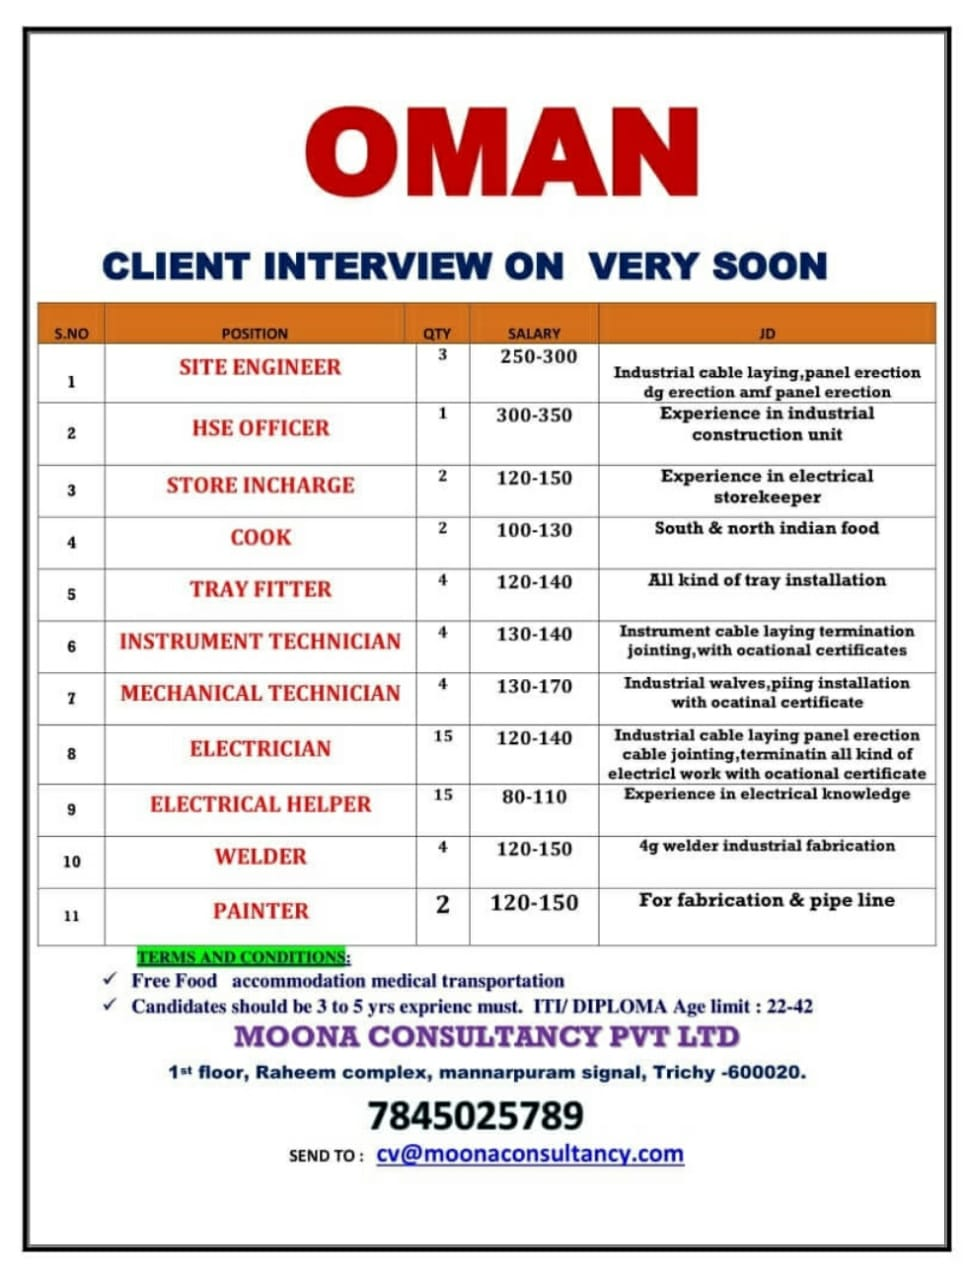 WALK-IN INTERVIEW AT TRICHY FOR OMAN